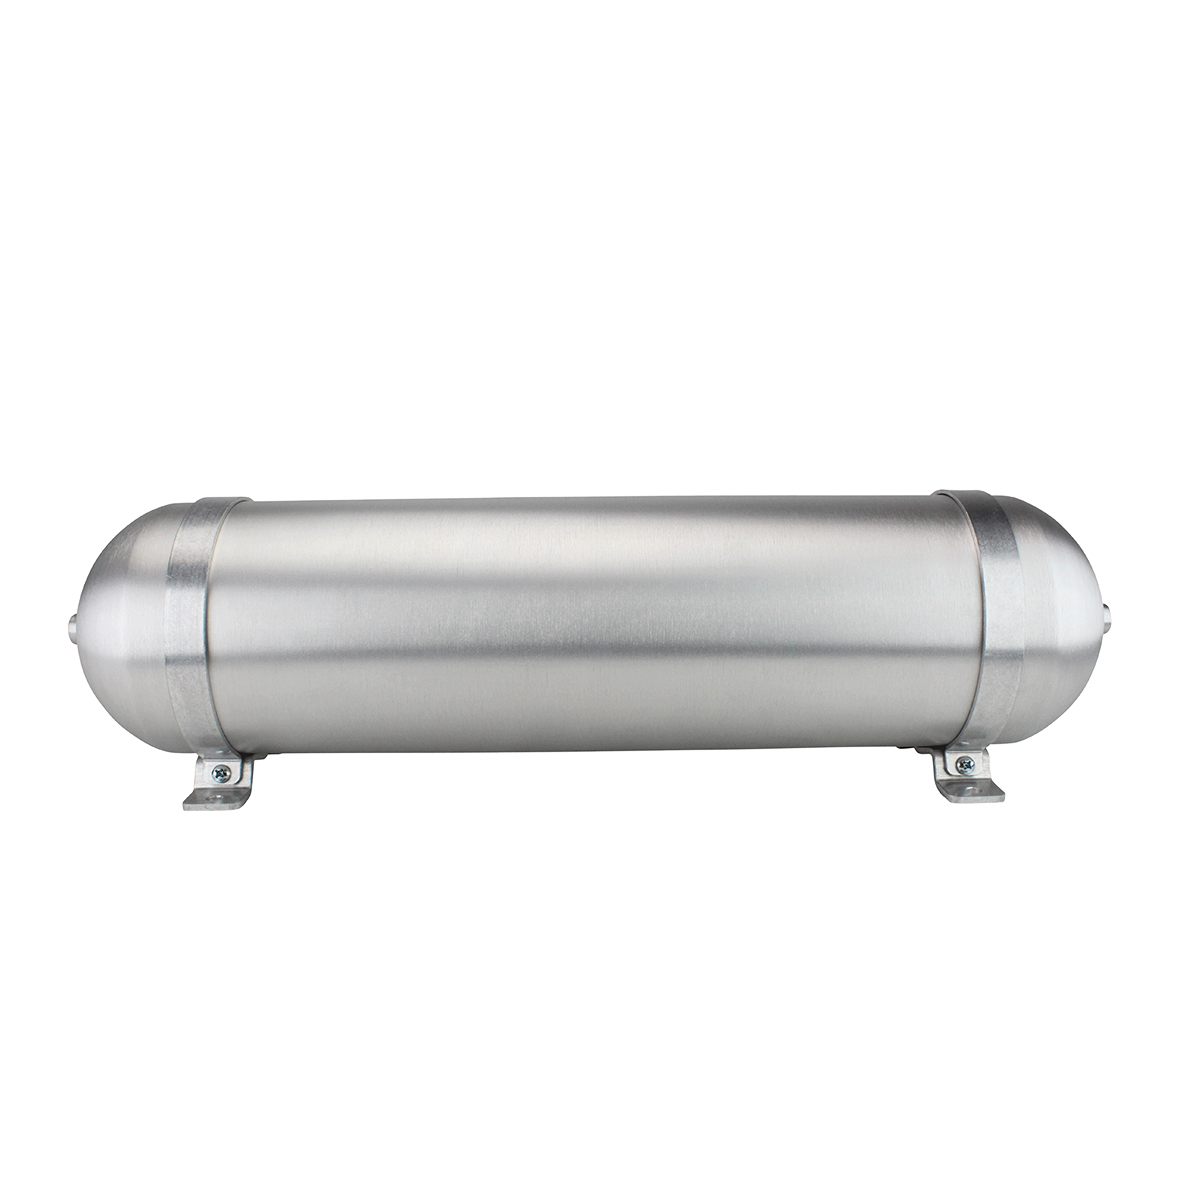 "SA624025-01 Seamless Tanks Aluminum Air Tank 24"" Length 6.625"" Diameter, (5) 1/4"" Ports, 200psi Rated, 2.89 Gallons"